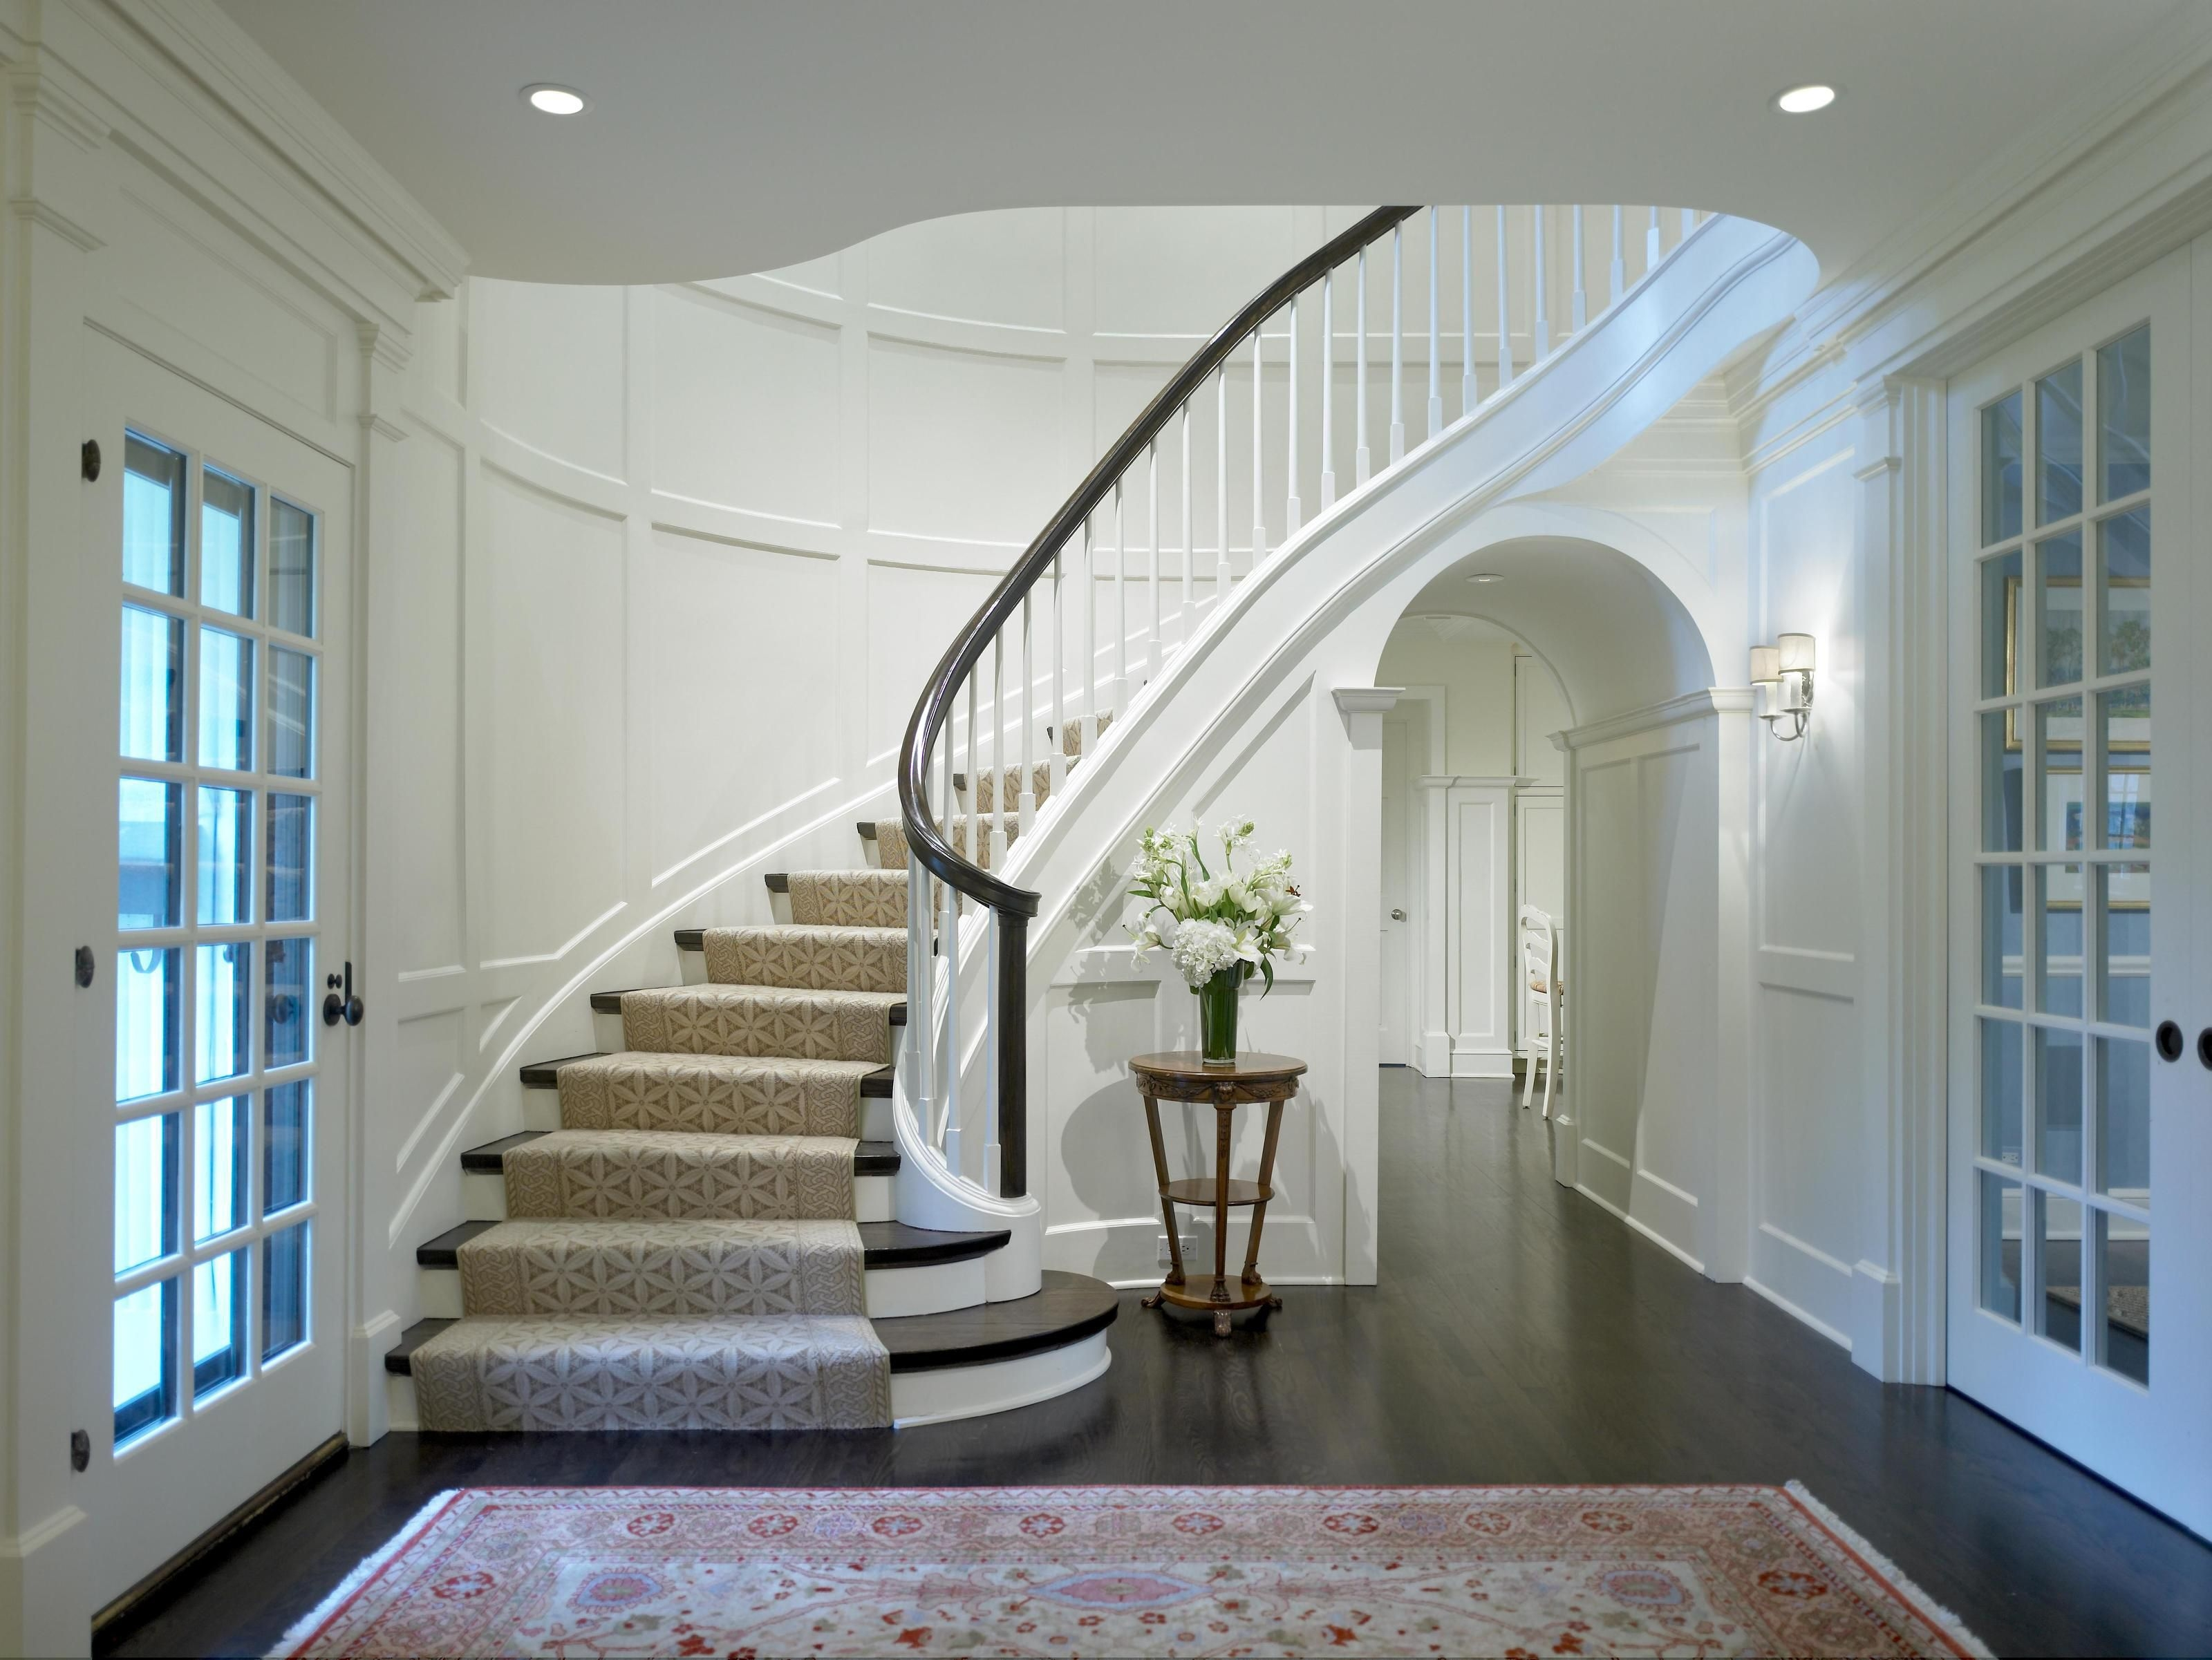 25 Stunning Carpeted Staircase Ideas Most Beautiful Staircase | Spiral Staircase Carpet Runners | Staircase Ideas | Staircase Railings | Stair Case | Beige Carpet | Sisal Stair